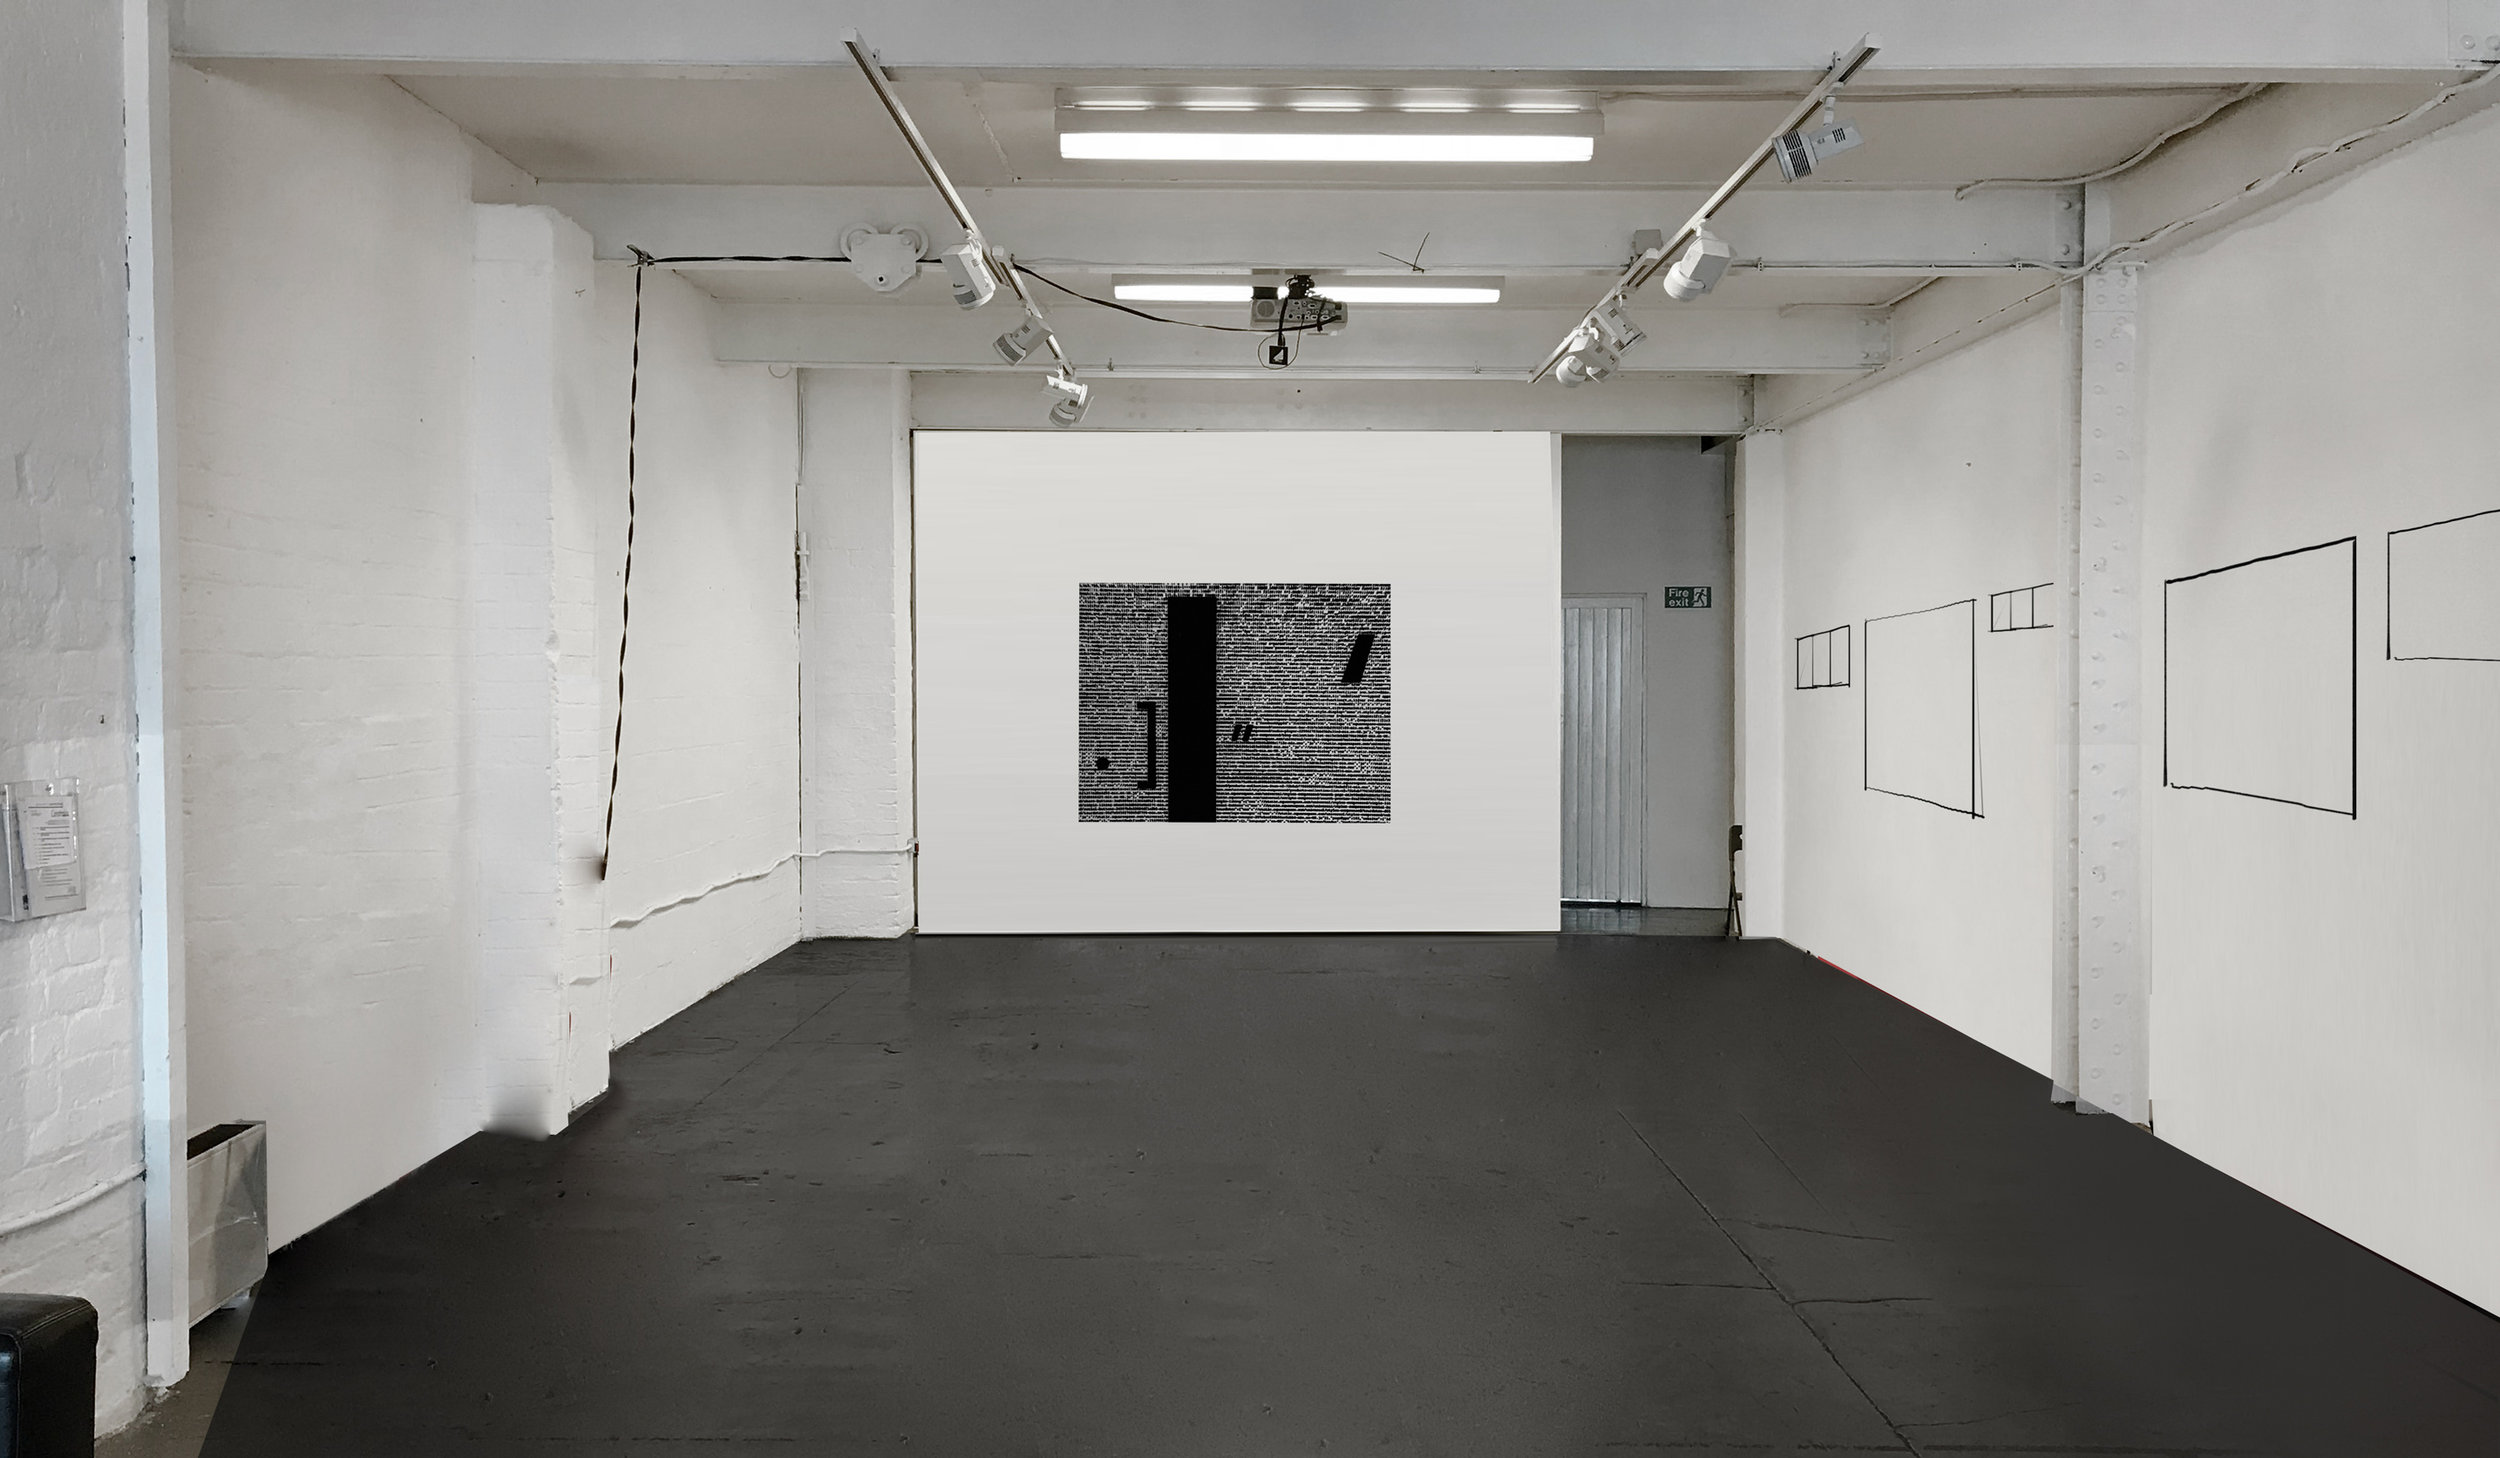 Exhibition-central-wall-2.jpg